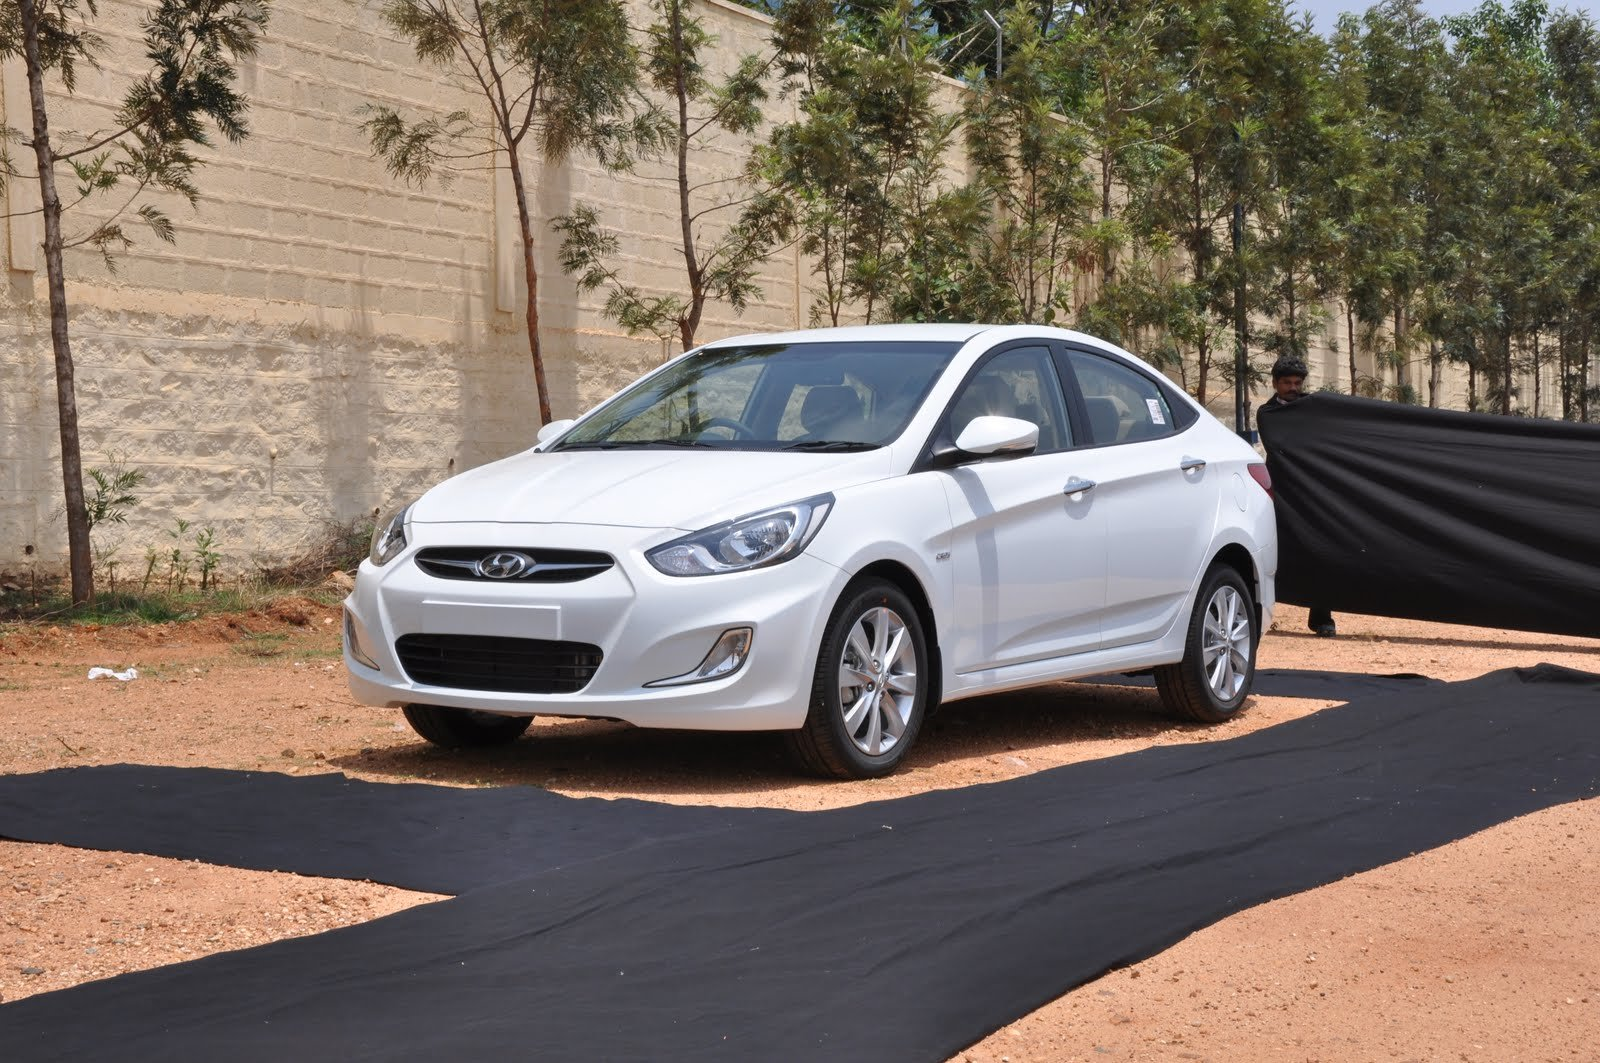 New Latest Bikes Cars Price Review Testride Latest Hyundai On This Month